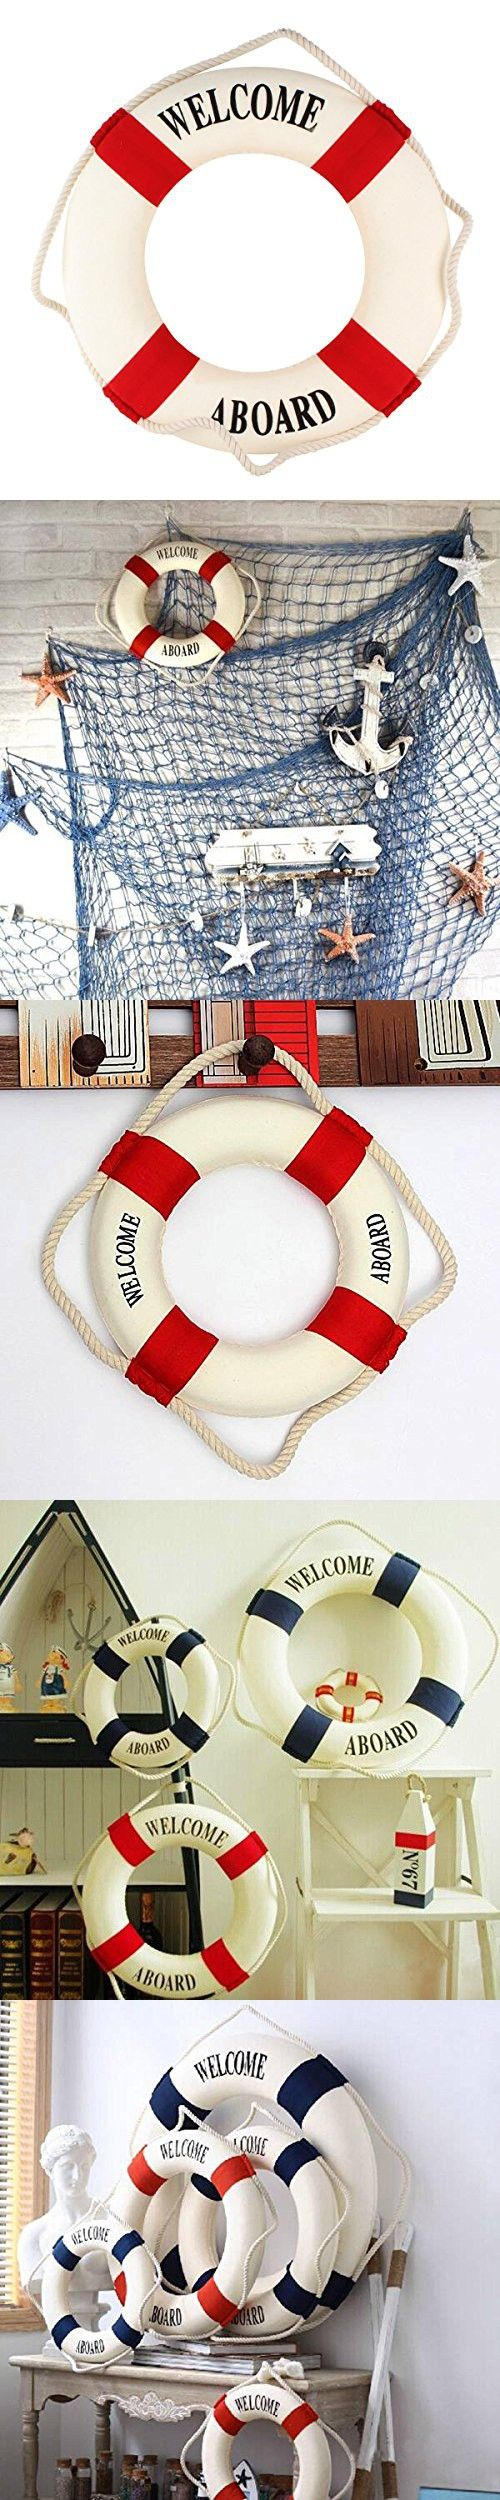 UniqueBella Foam Welcome Aboard Nautical Decor Lifebuoy Ring Wall Hanging Home Decoration Red Band Diameter 17.5 inches(45cm)